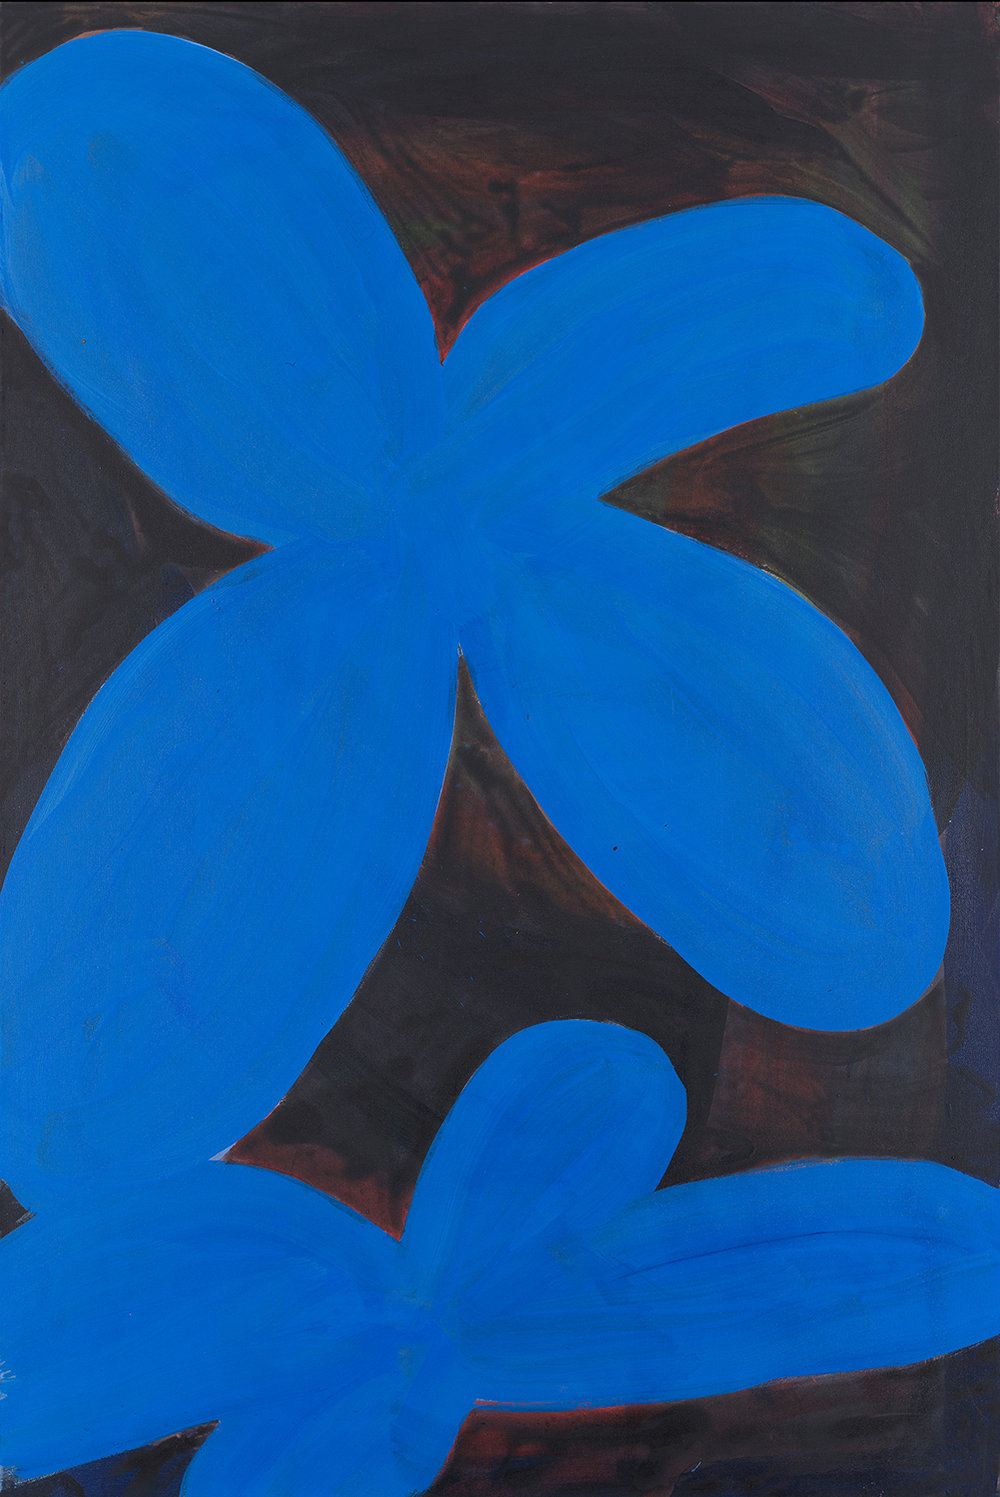 flower 13, blue, black, 2011 - 2015